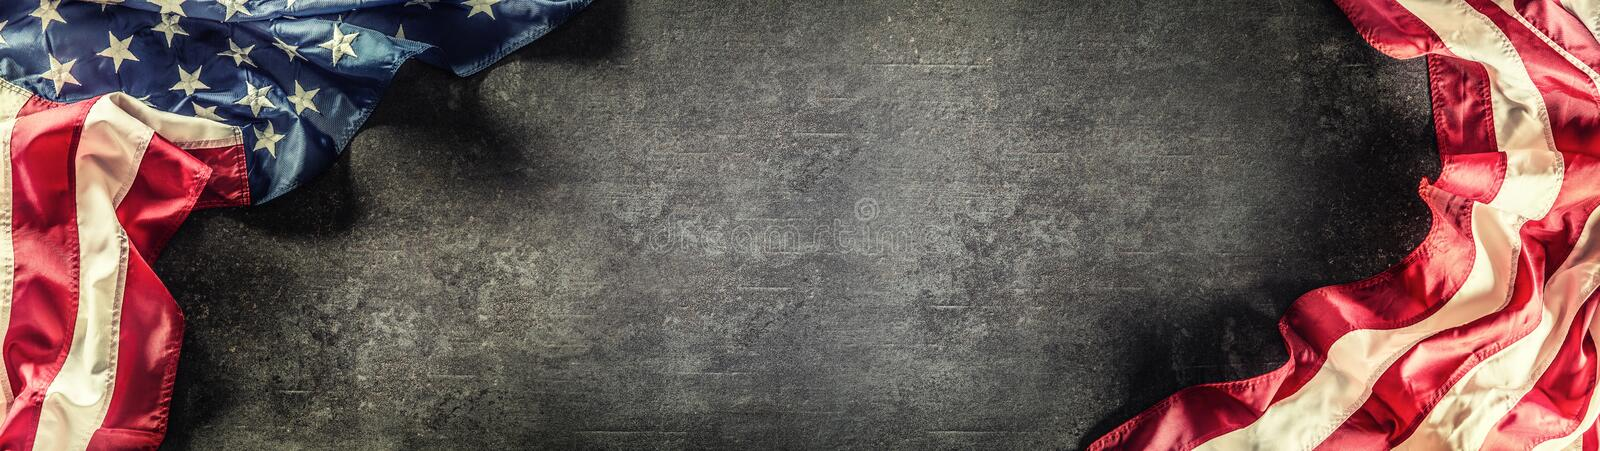 Flag of United States of America on a concrete background. Usa flags and stripes as a panoramic banner. American, patriotic, red, independence, white, blue royalty free stock photography